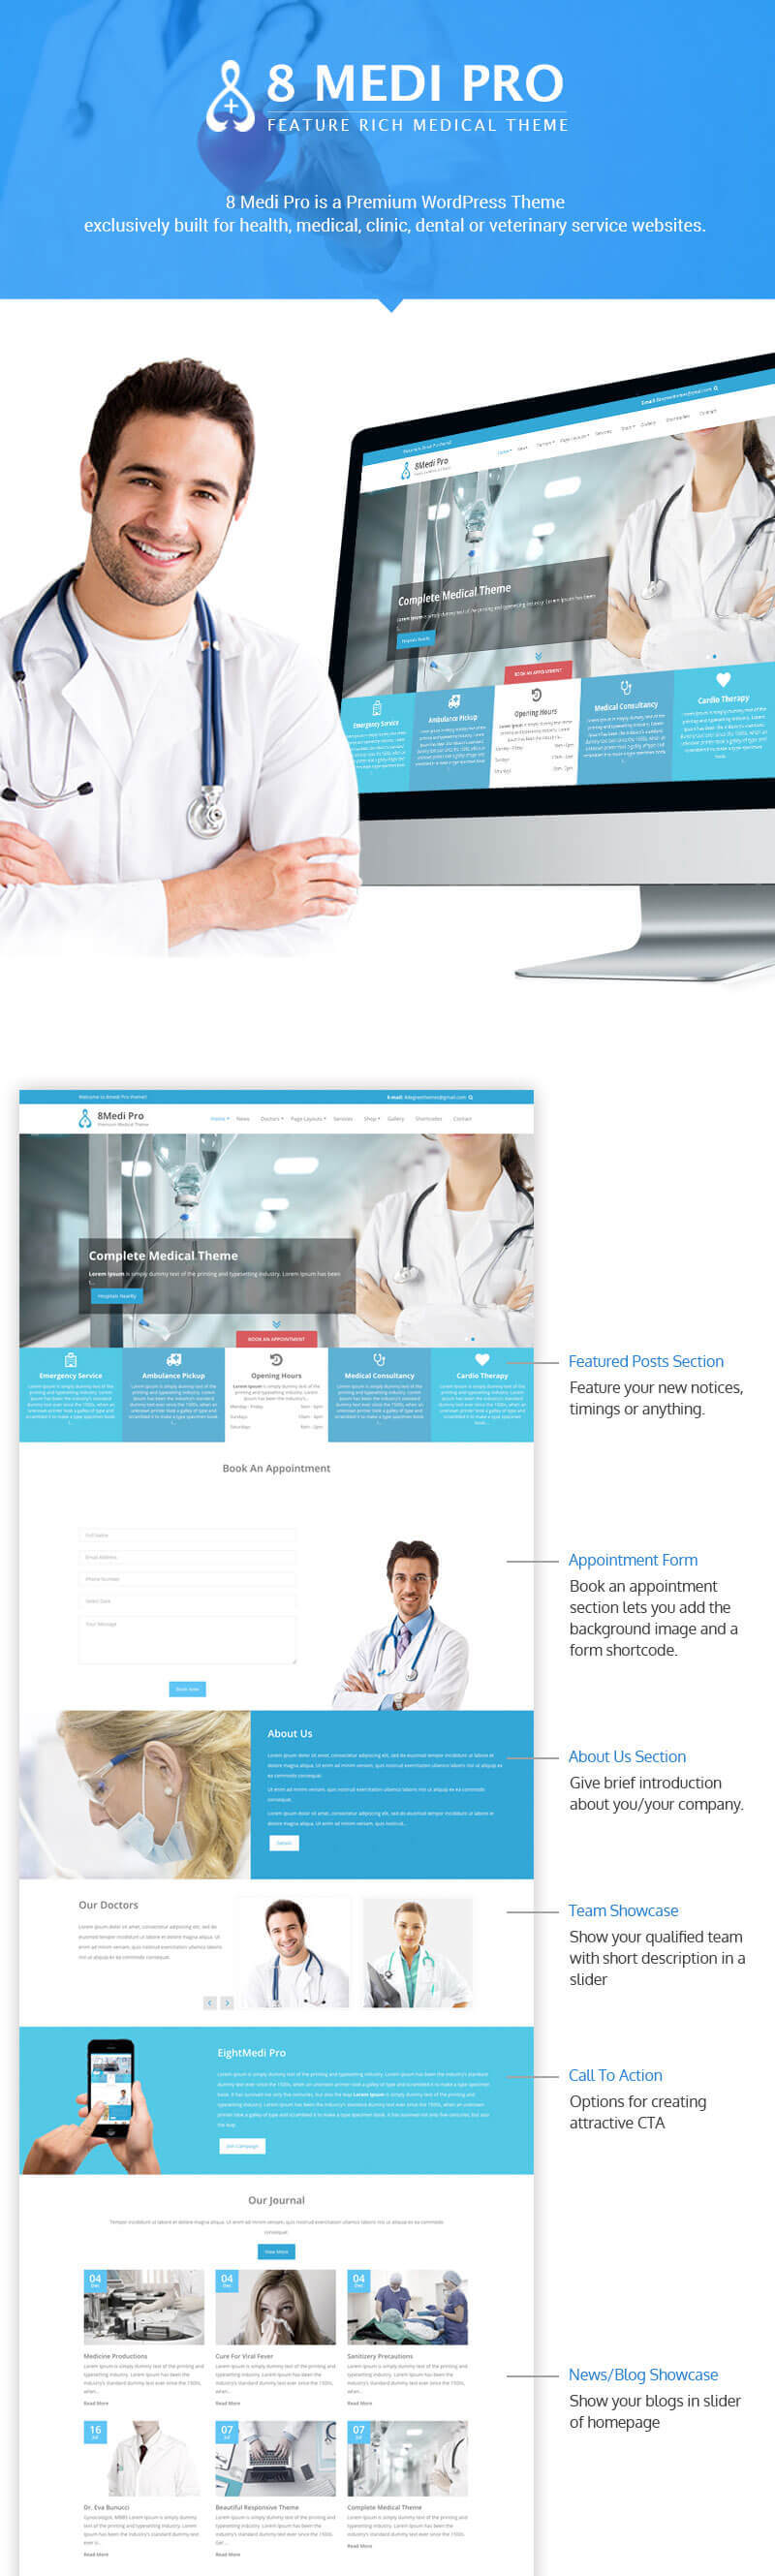 EightMedi Pro – Best Premium Medical & Healthcare WordPress Theme